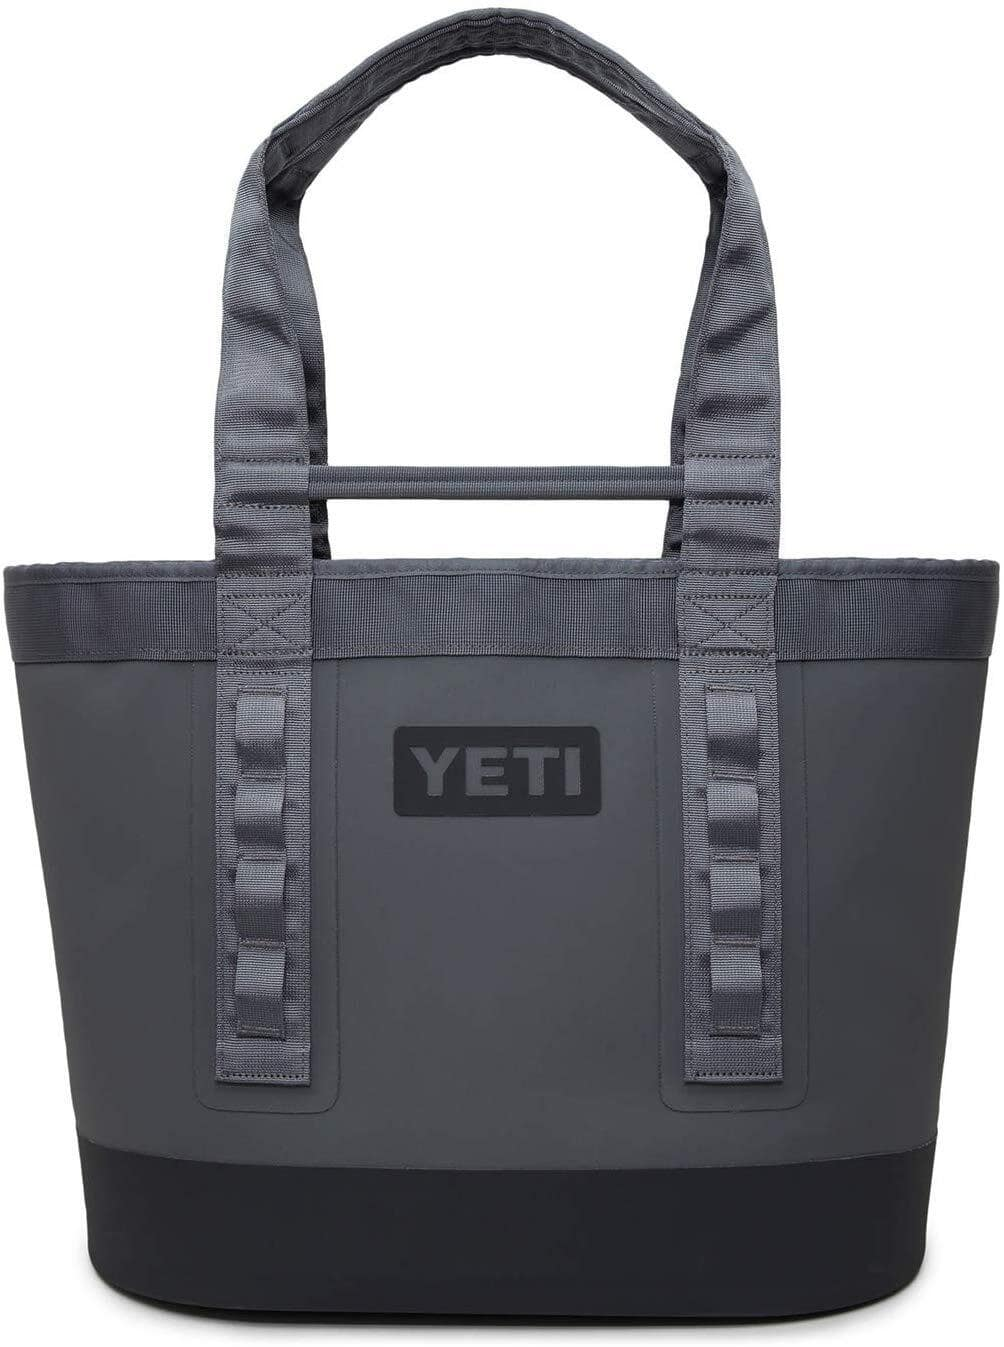 photo of a Yeti tote